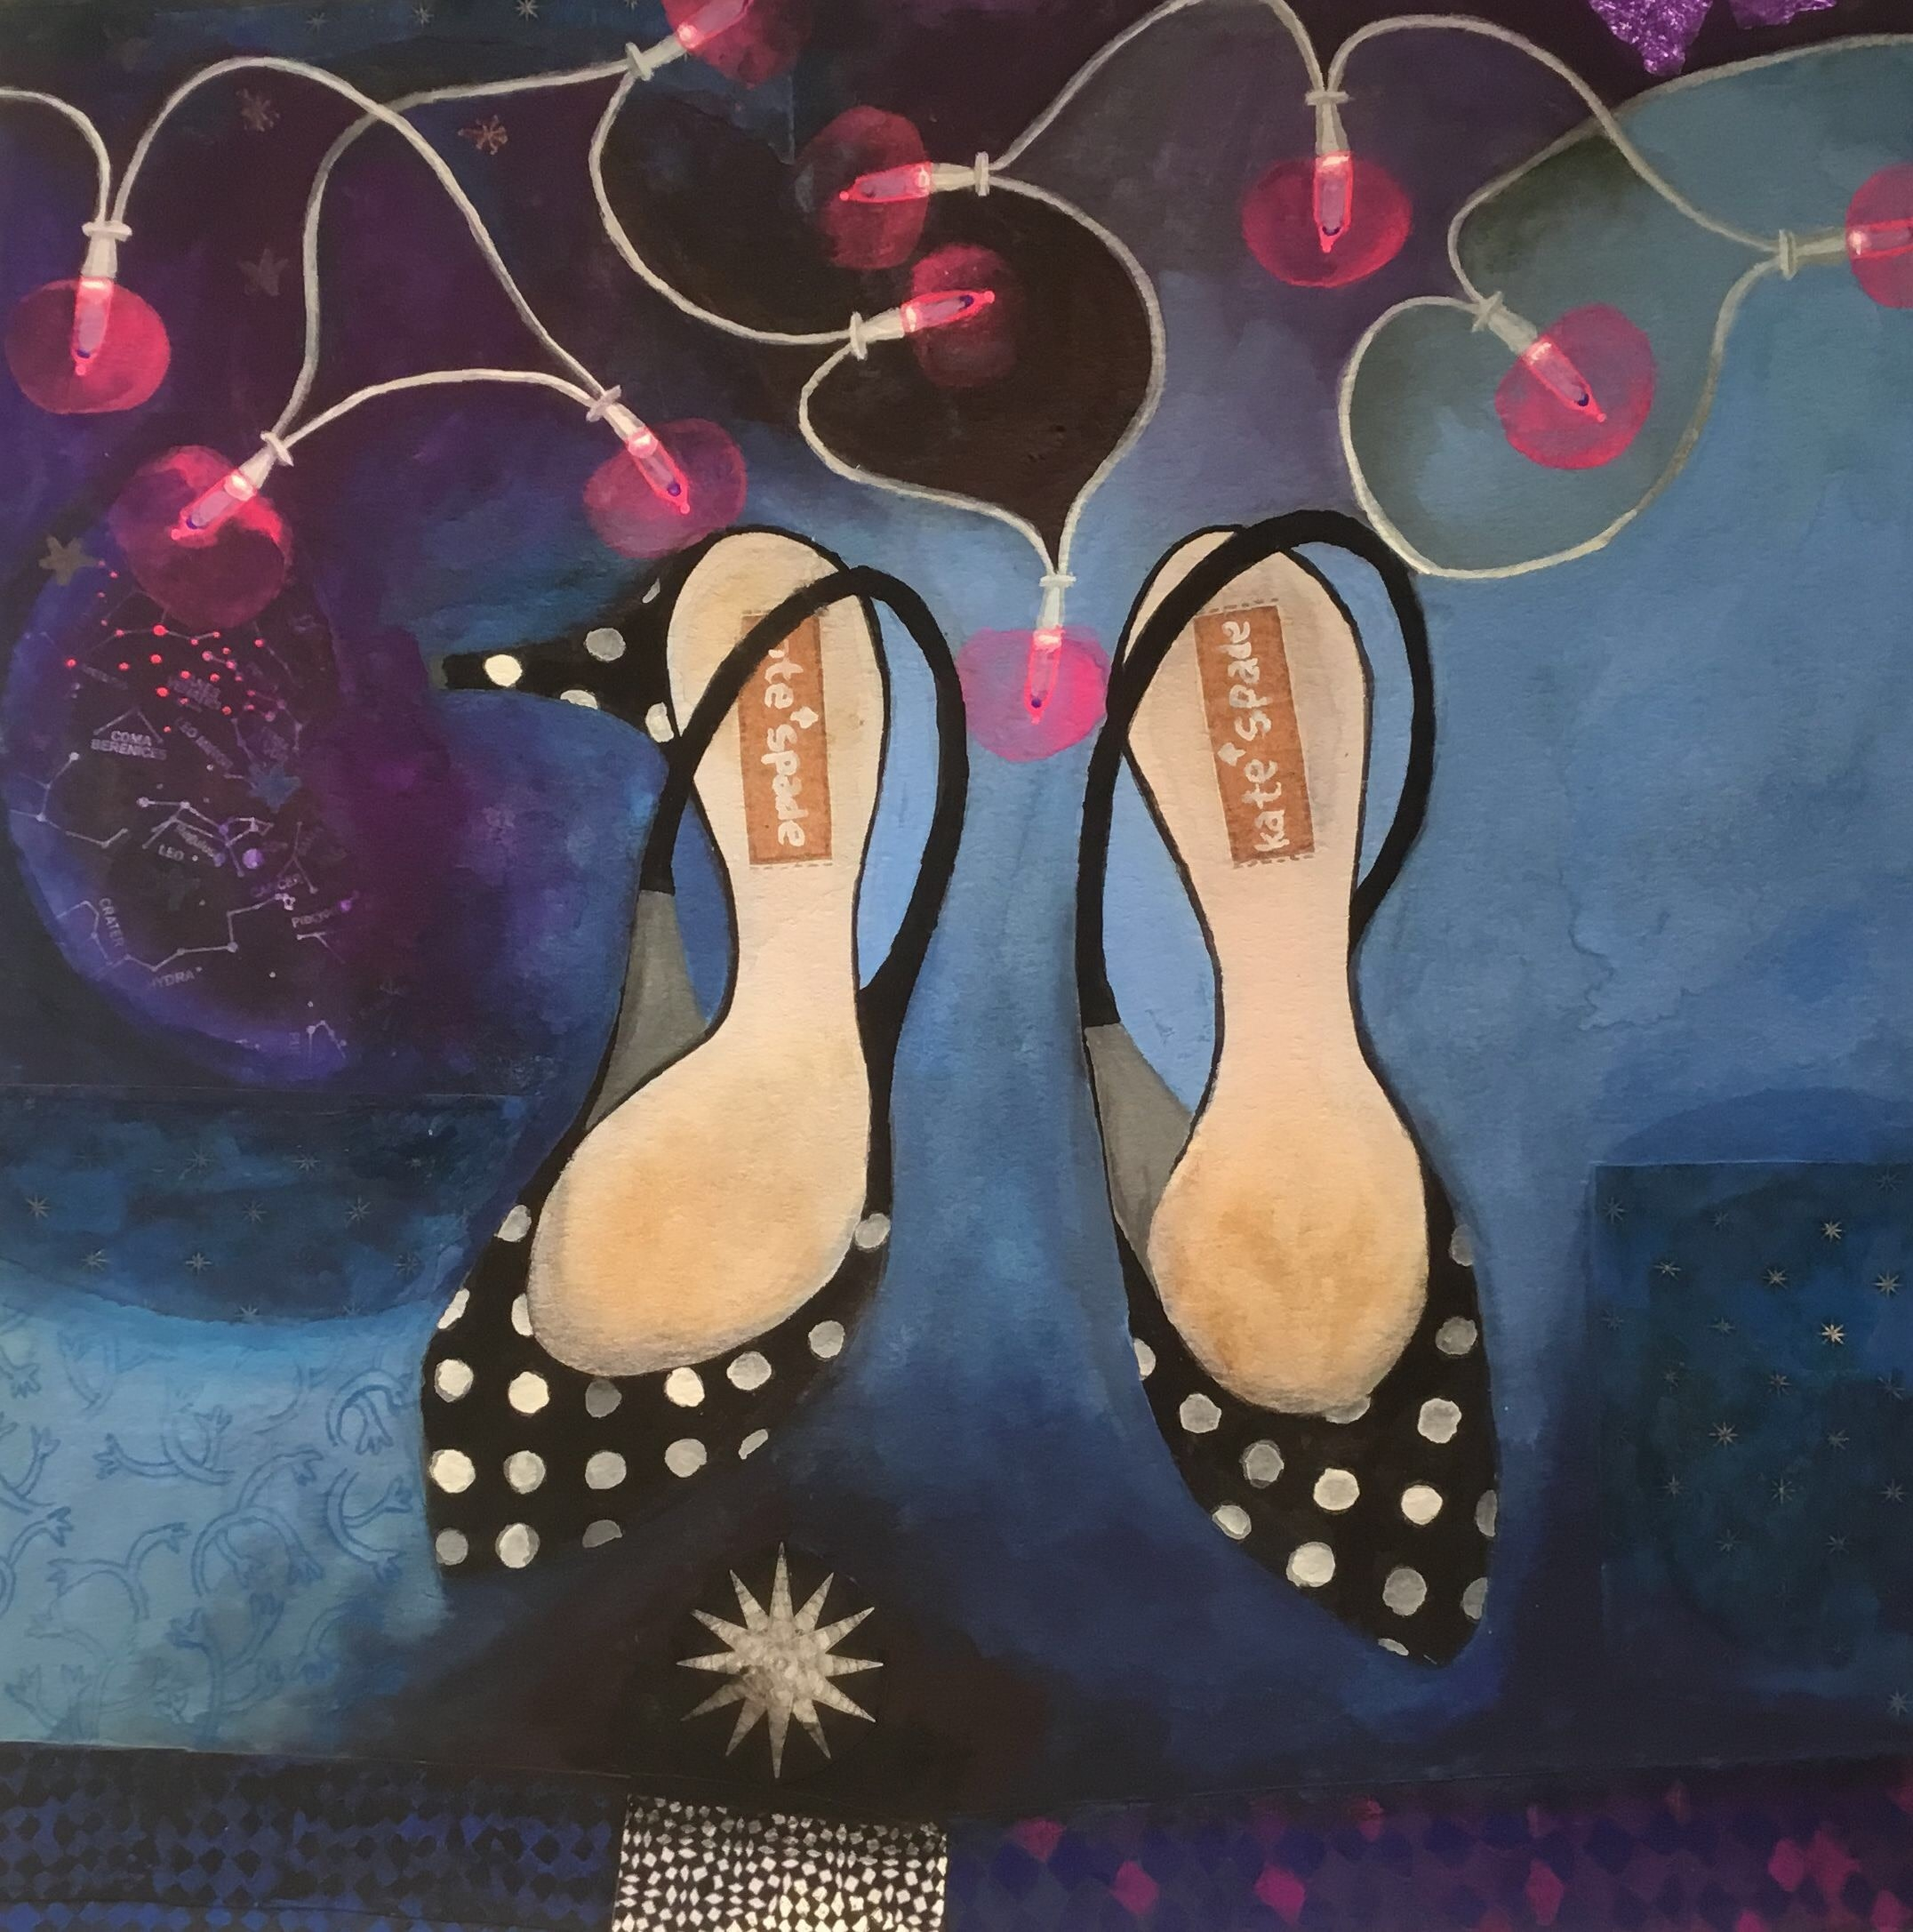 """<span class=""""link fancybox-details-link""""><a href=""""/artists/146-gertie-young/works/11276-gertie-young-kitten-heels-with-fairy-lights/"""">View Detail Page</a></span><div class=""""artist""""><span class=""""artist""""><strong>Gertie Young</strong></span></div><div class=""""title""""><em>Kitten Heels with Fairy Lights</em></div><div class=""""medium"""">watercolour, gouache & collage</div><div class=""""dimensions"""">50x50cm</div><div class=""""price"""">£360.00</div>"""